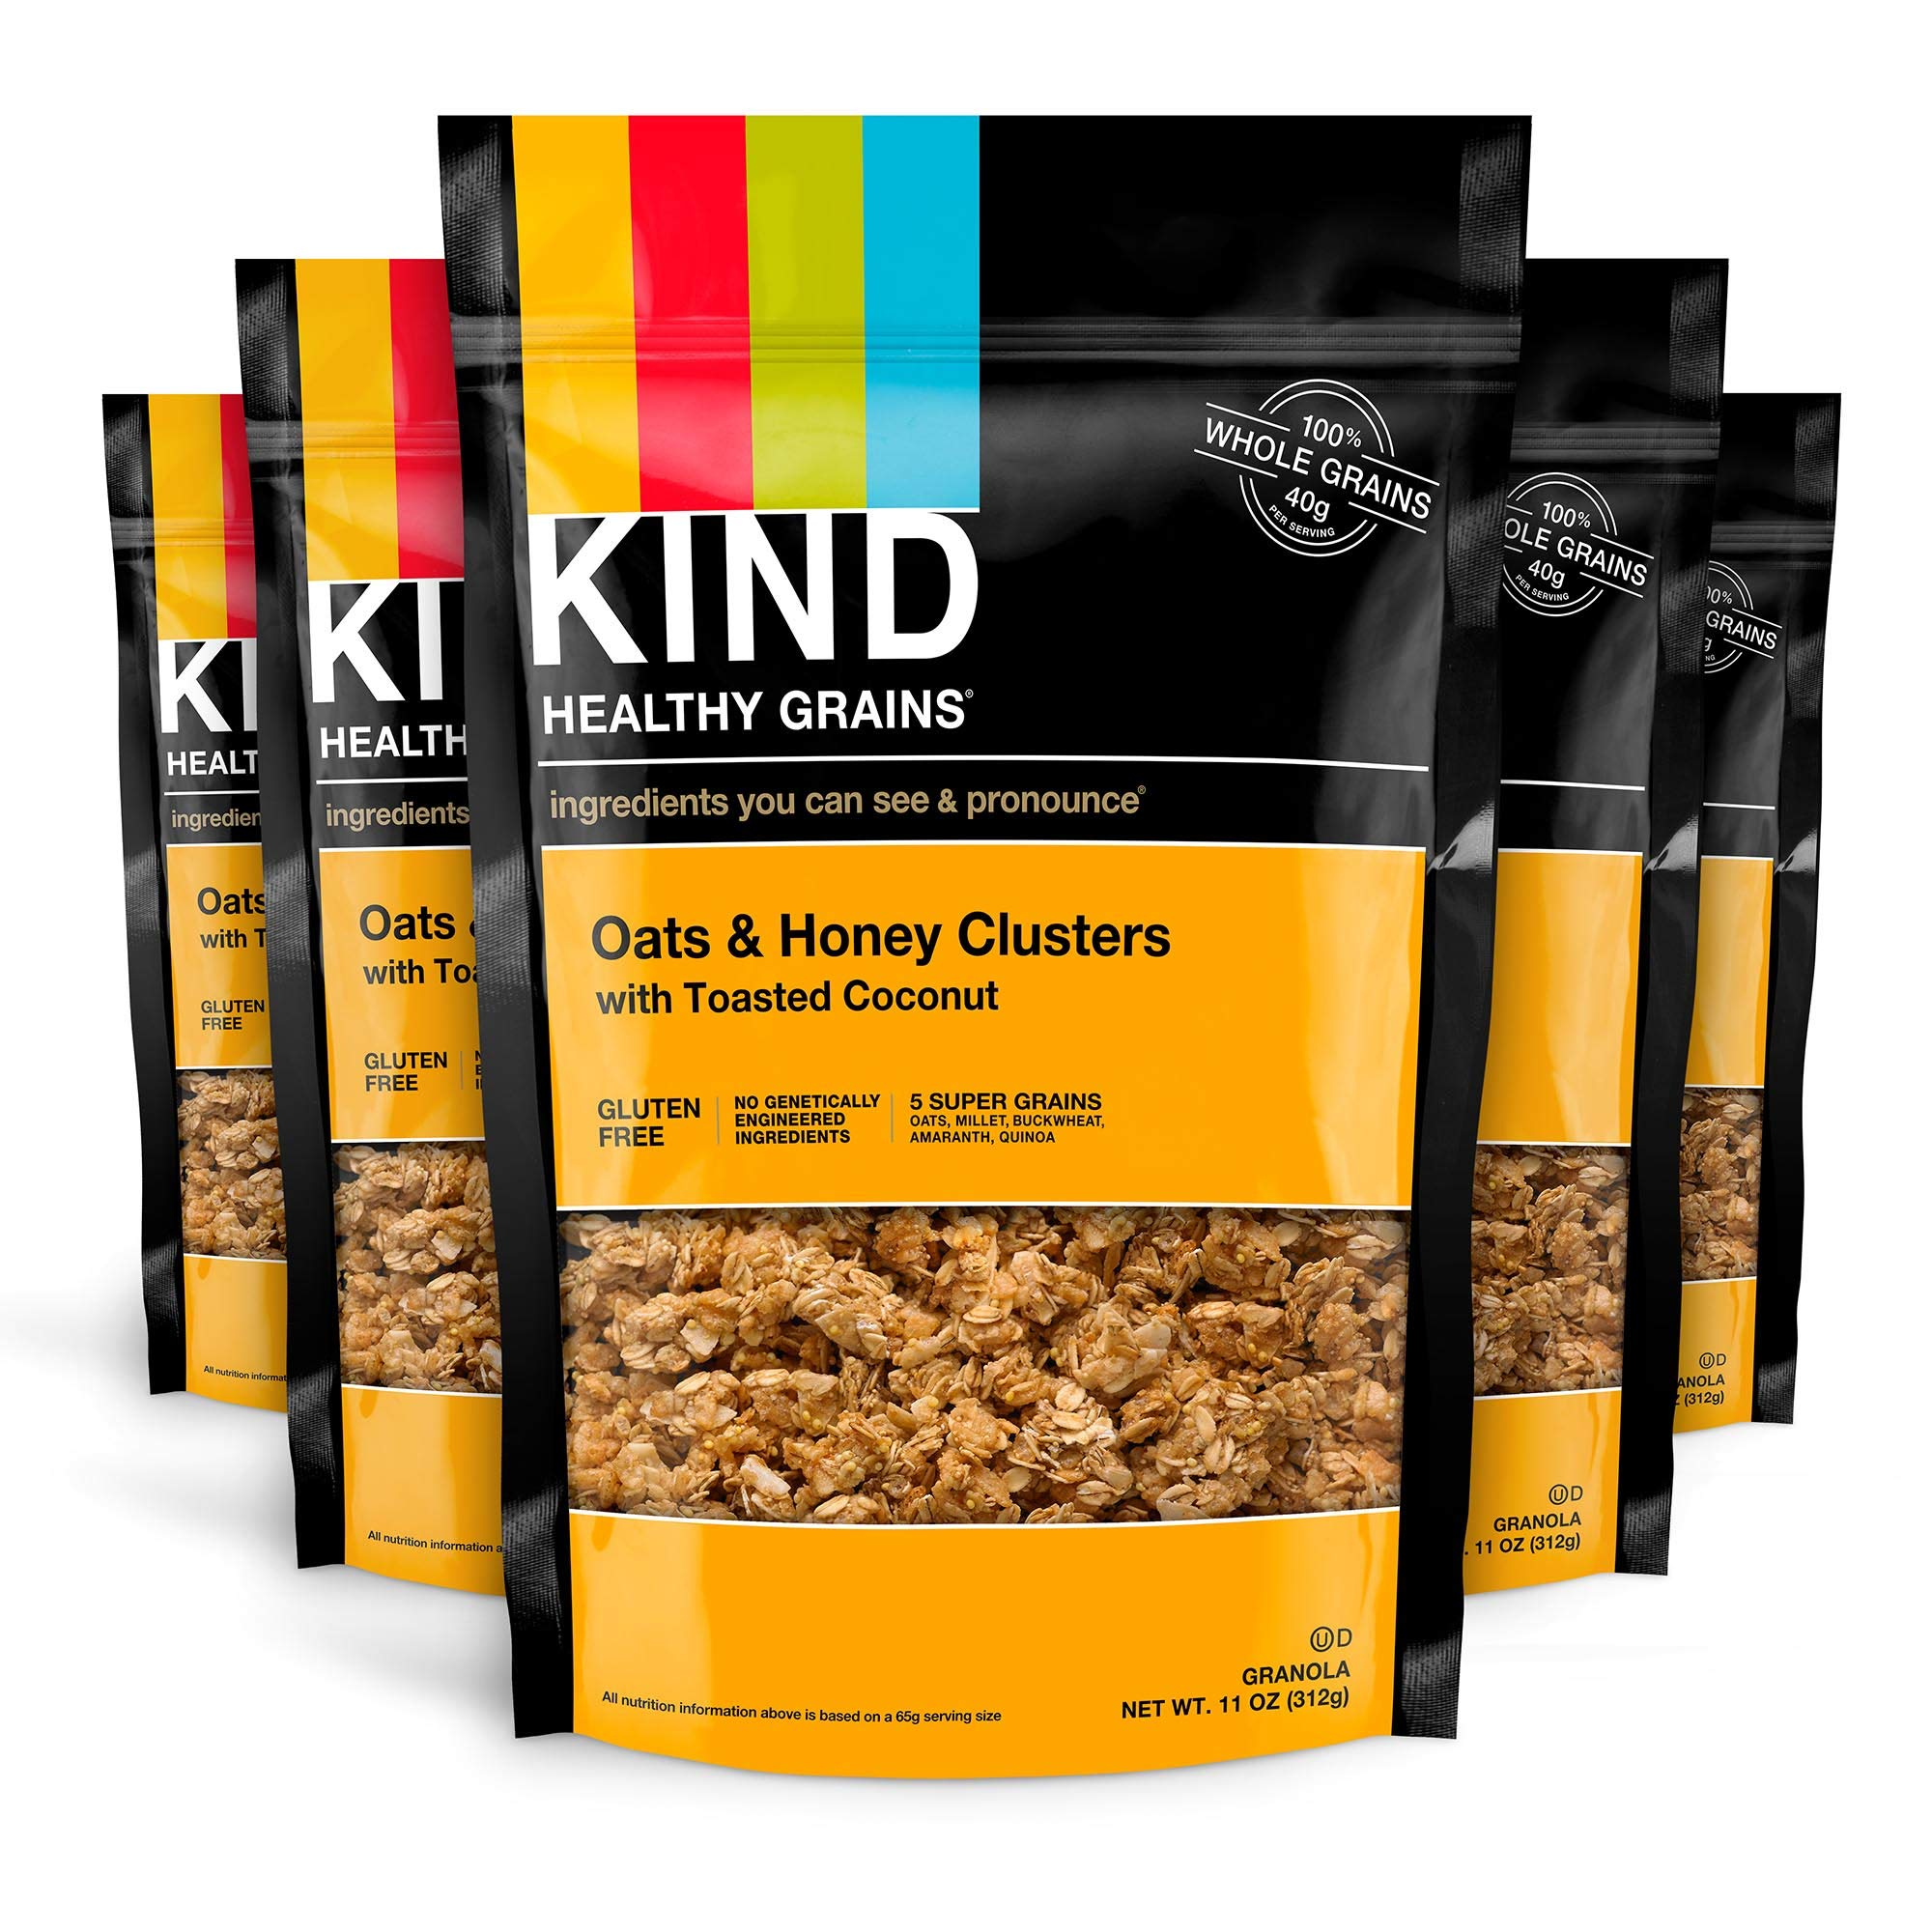 KIND Healthy Grains Clusters, Oats and Honey with Toasted Coconut Granola, Gluten Free, 11 Ounce Bags, 6 Count by KIND